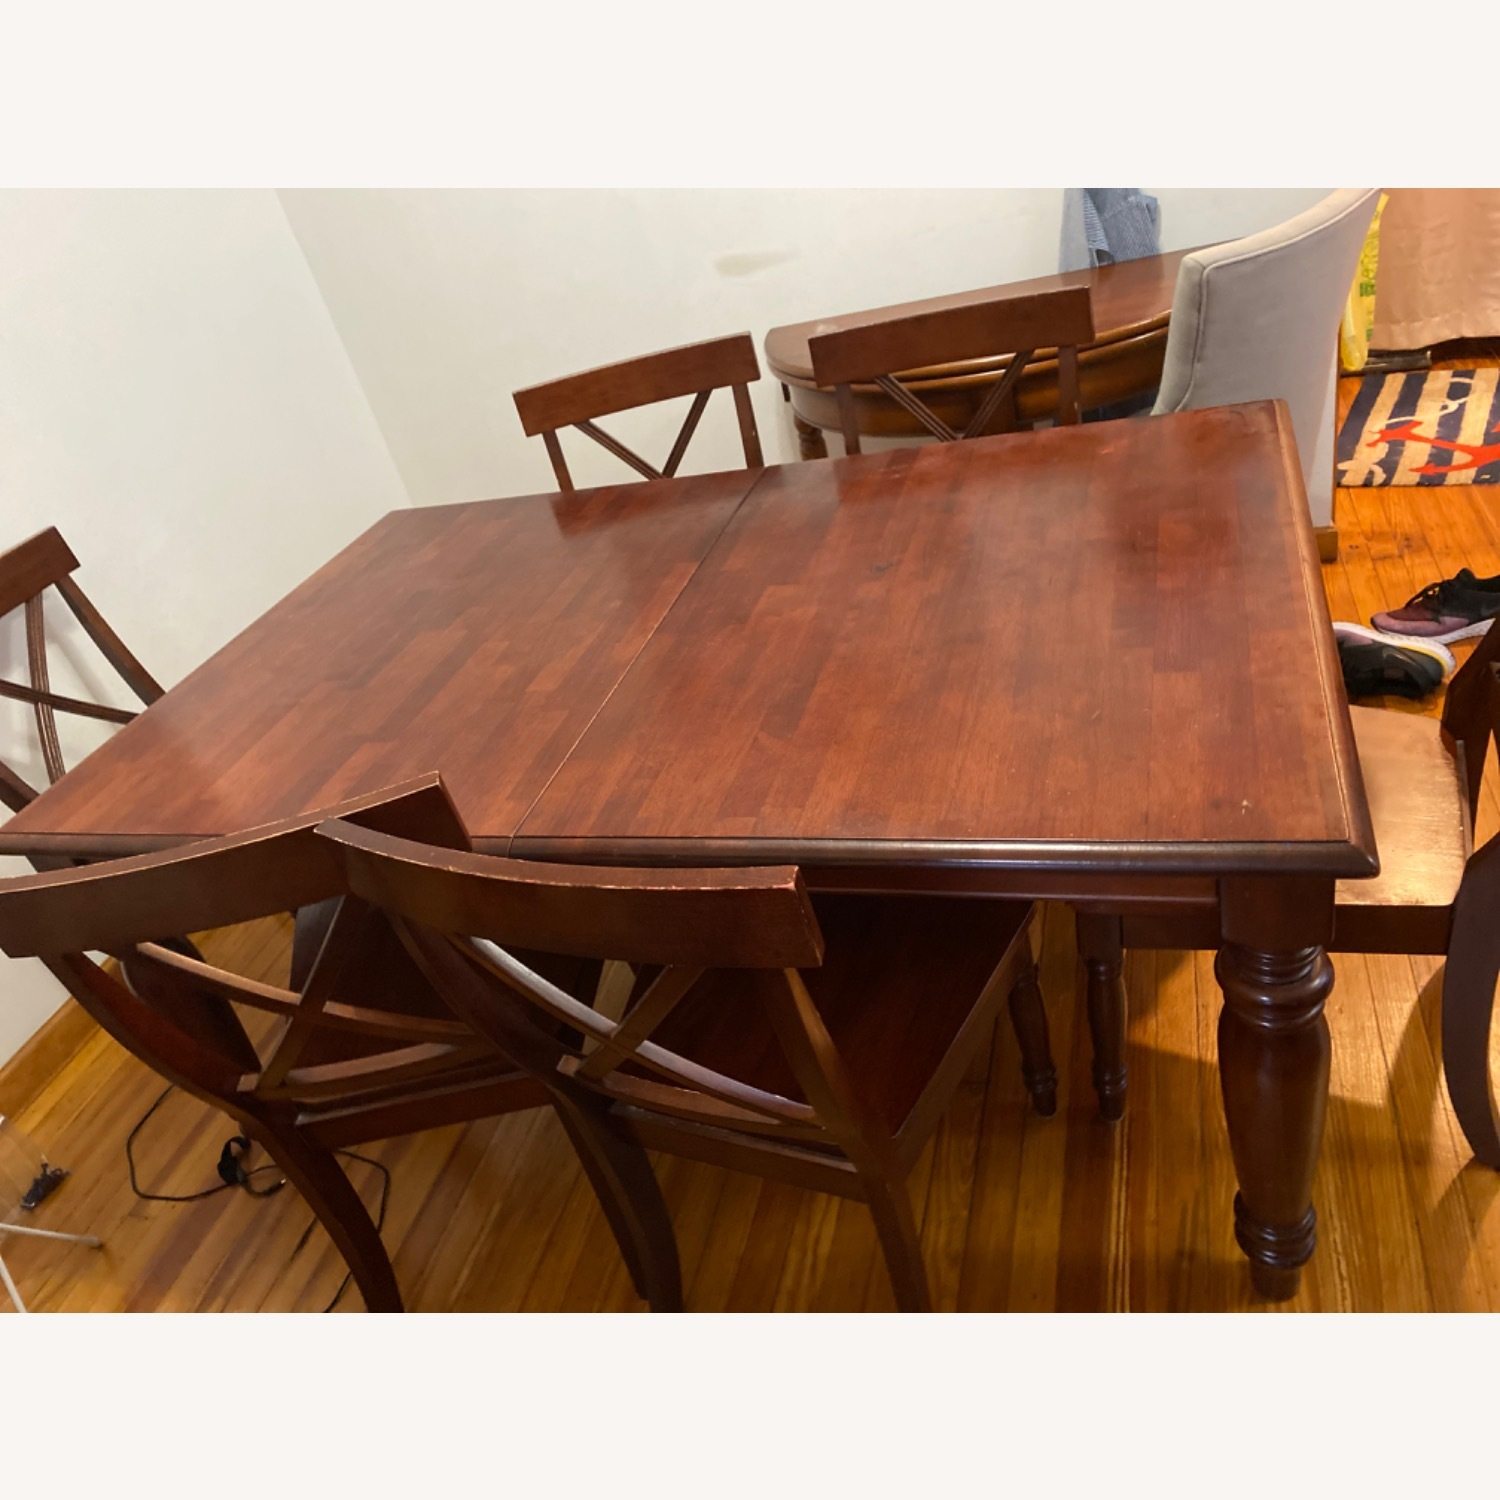 Pier One Imports Dining Set with Hidden Leaf - image-3